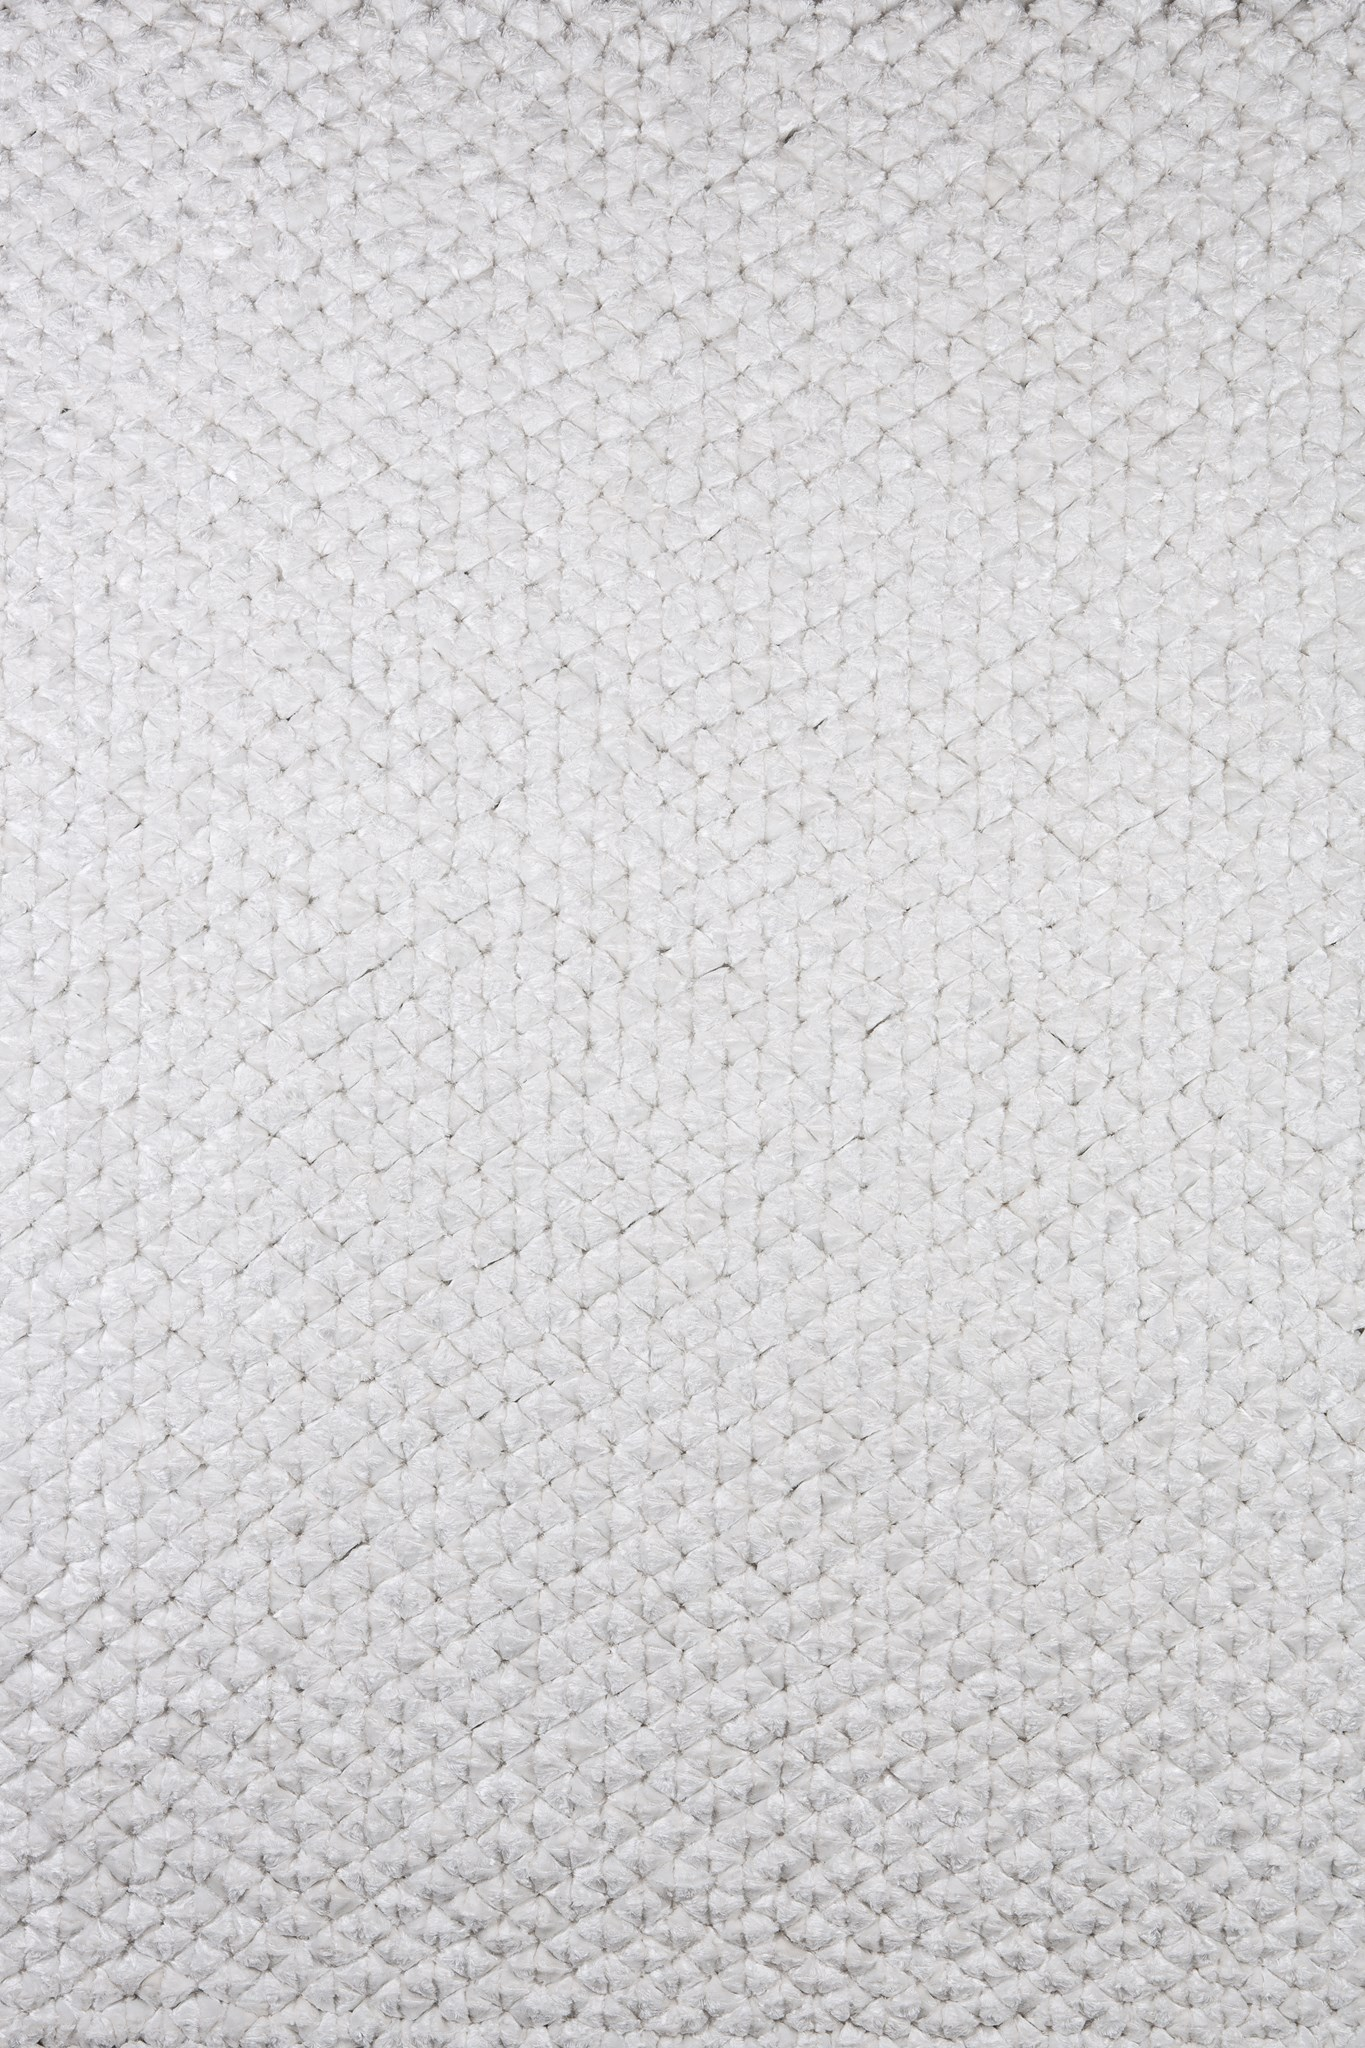 Shimmer Pebble Rug: 8'x10' Platinum